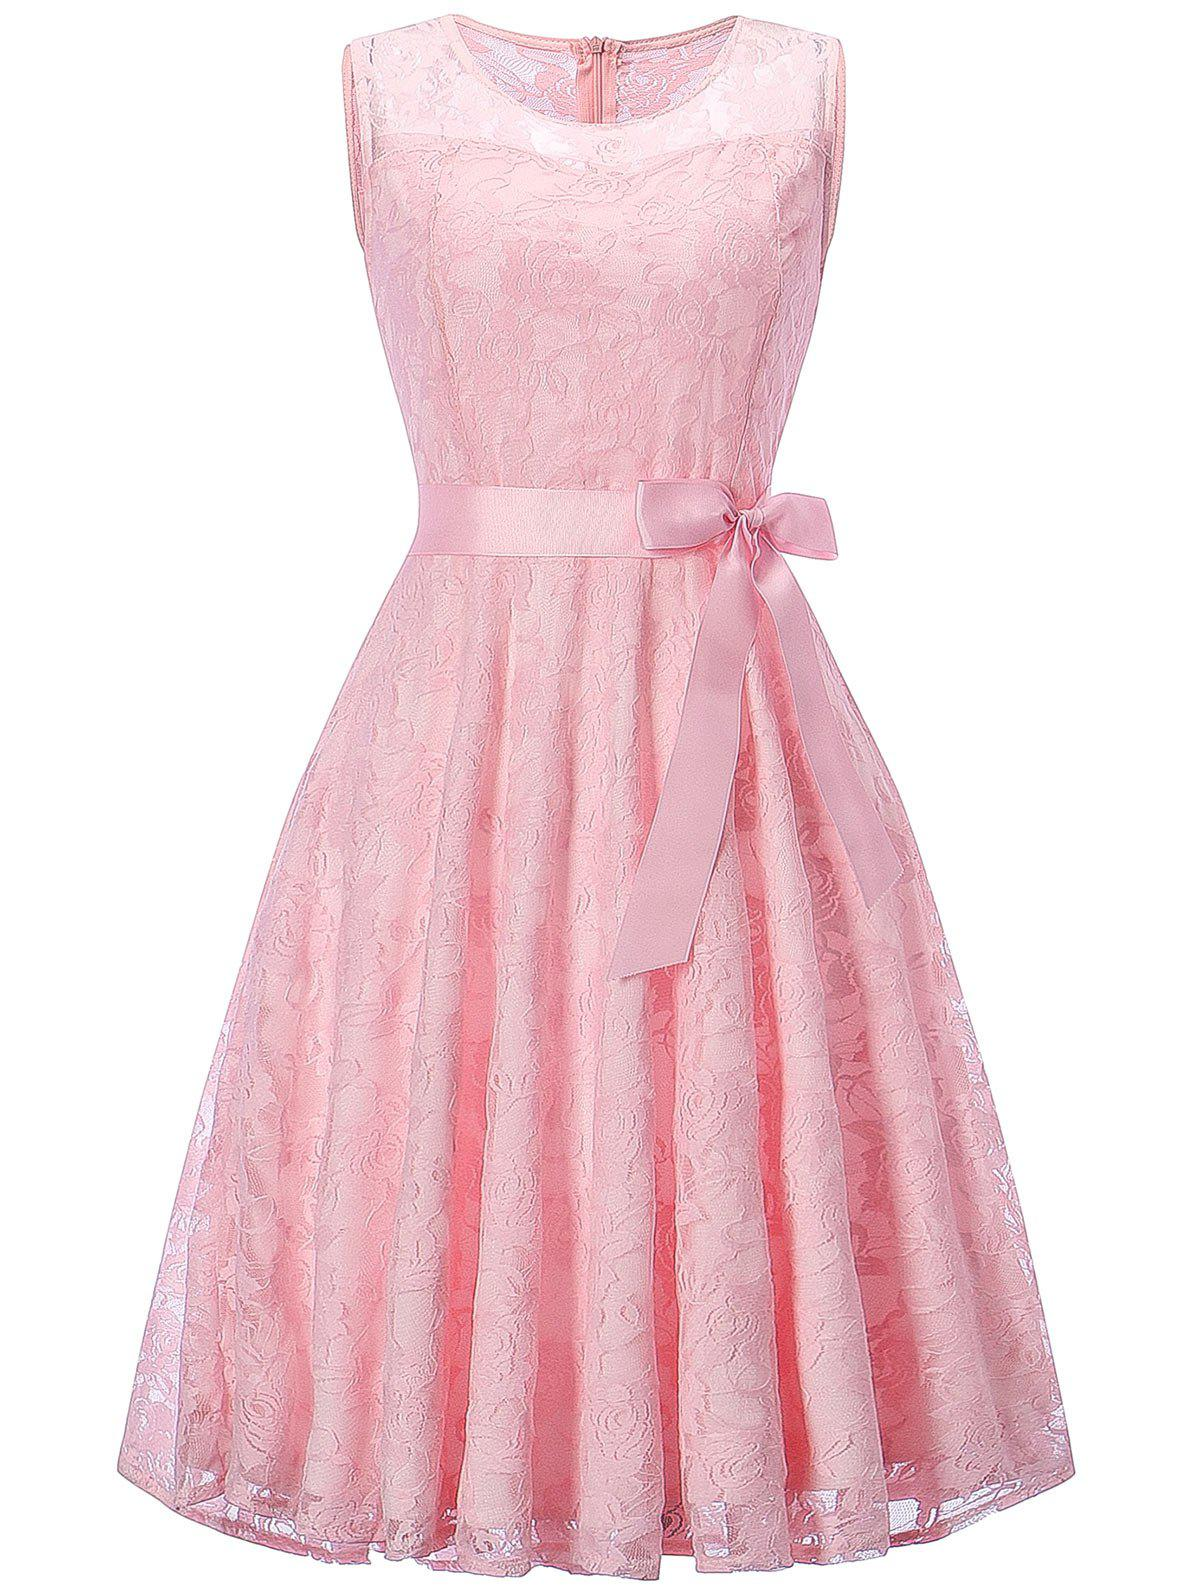 Sleeveless Lace Swing Dress - PINK 2XL